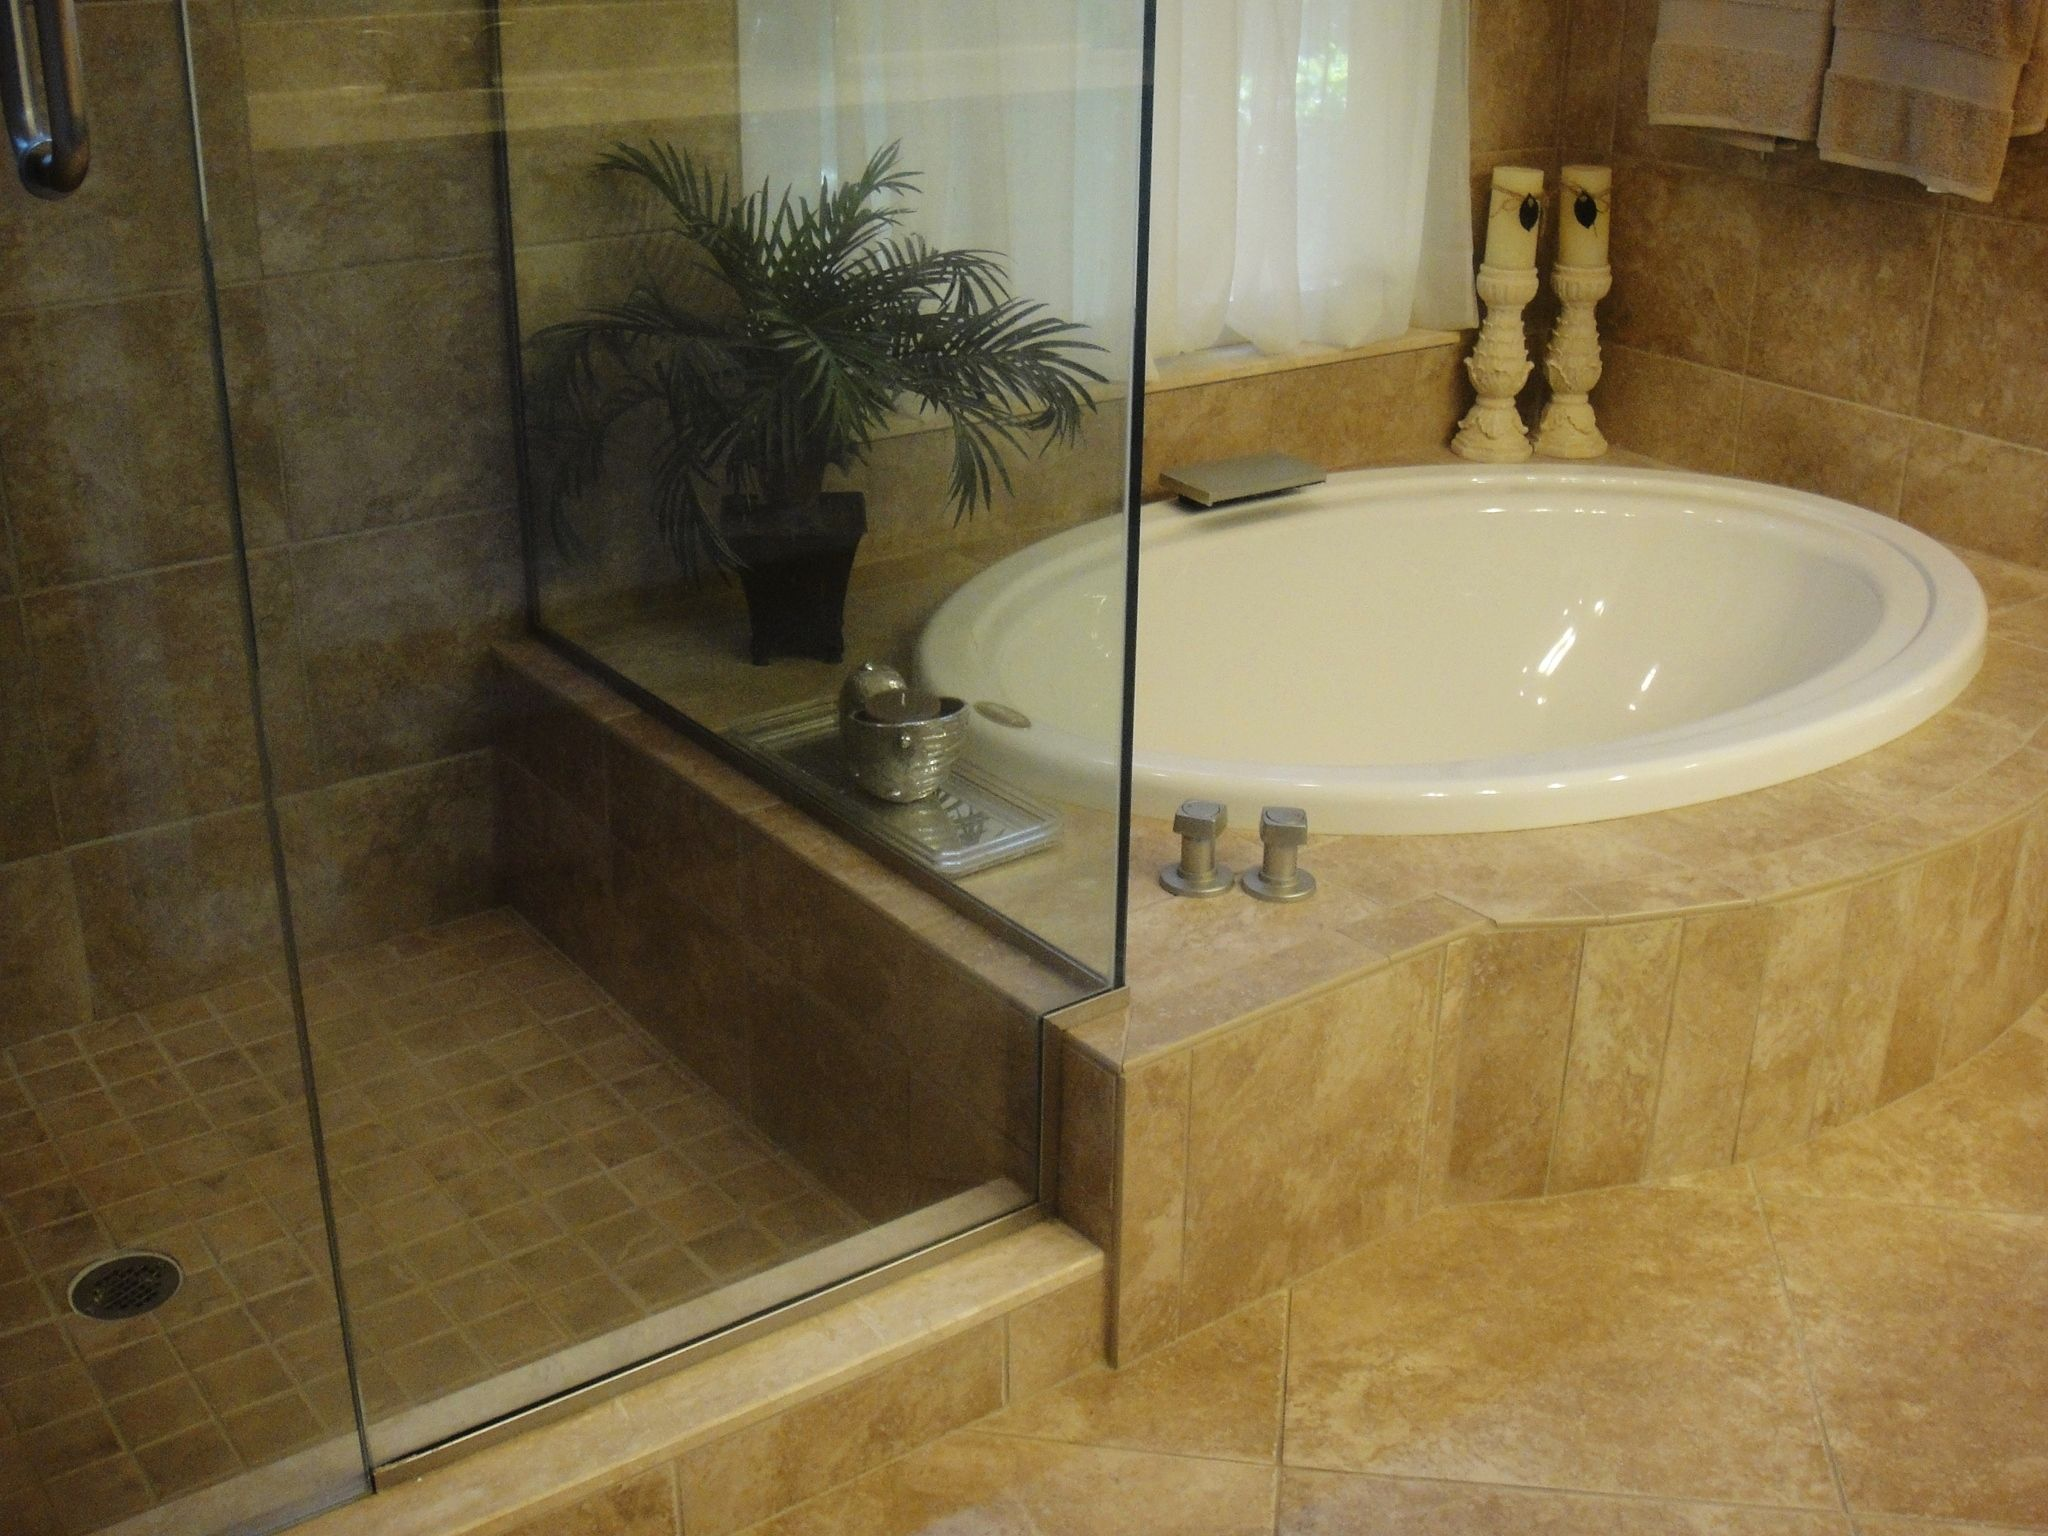 Garden Tub by Jacuzzi, Large Walk-in Shower | Trinity FL Home for ...